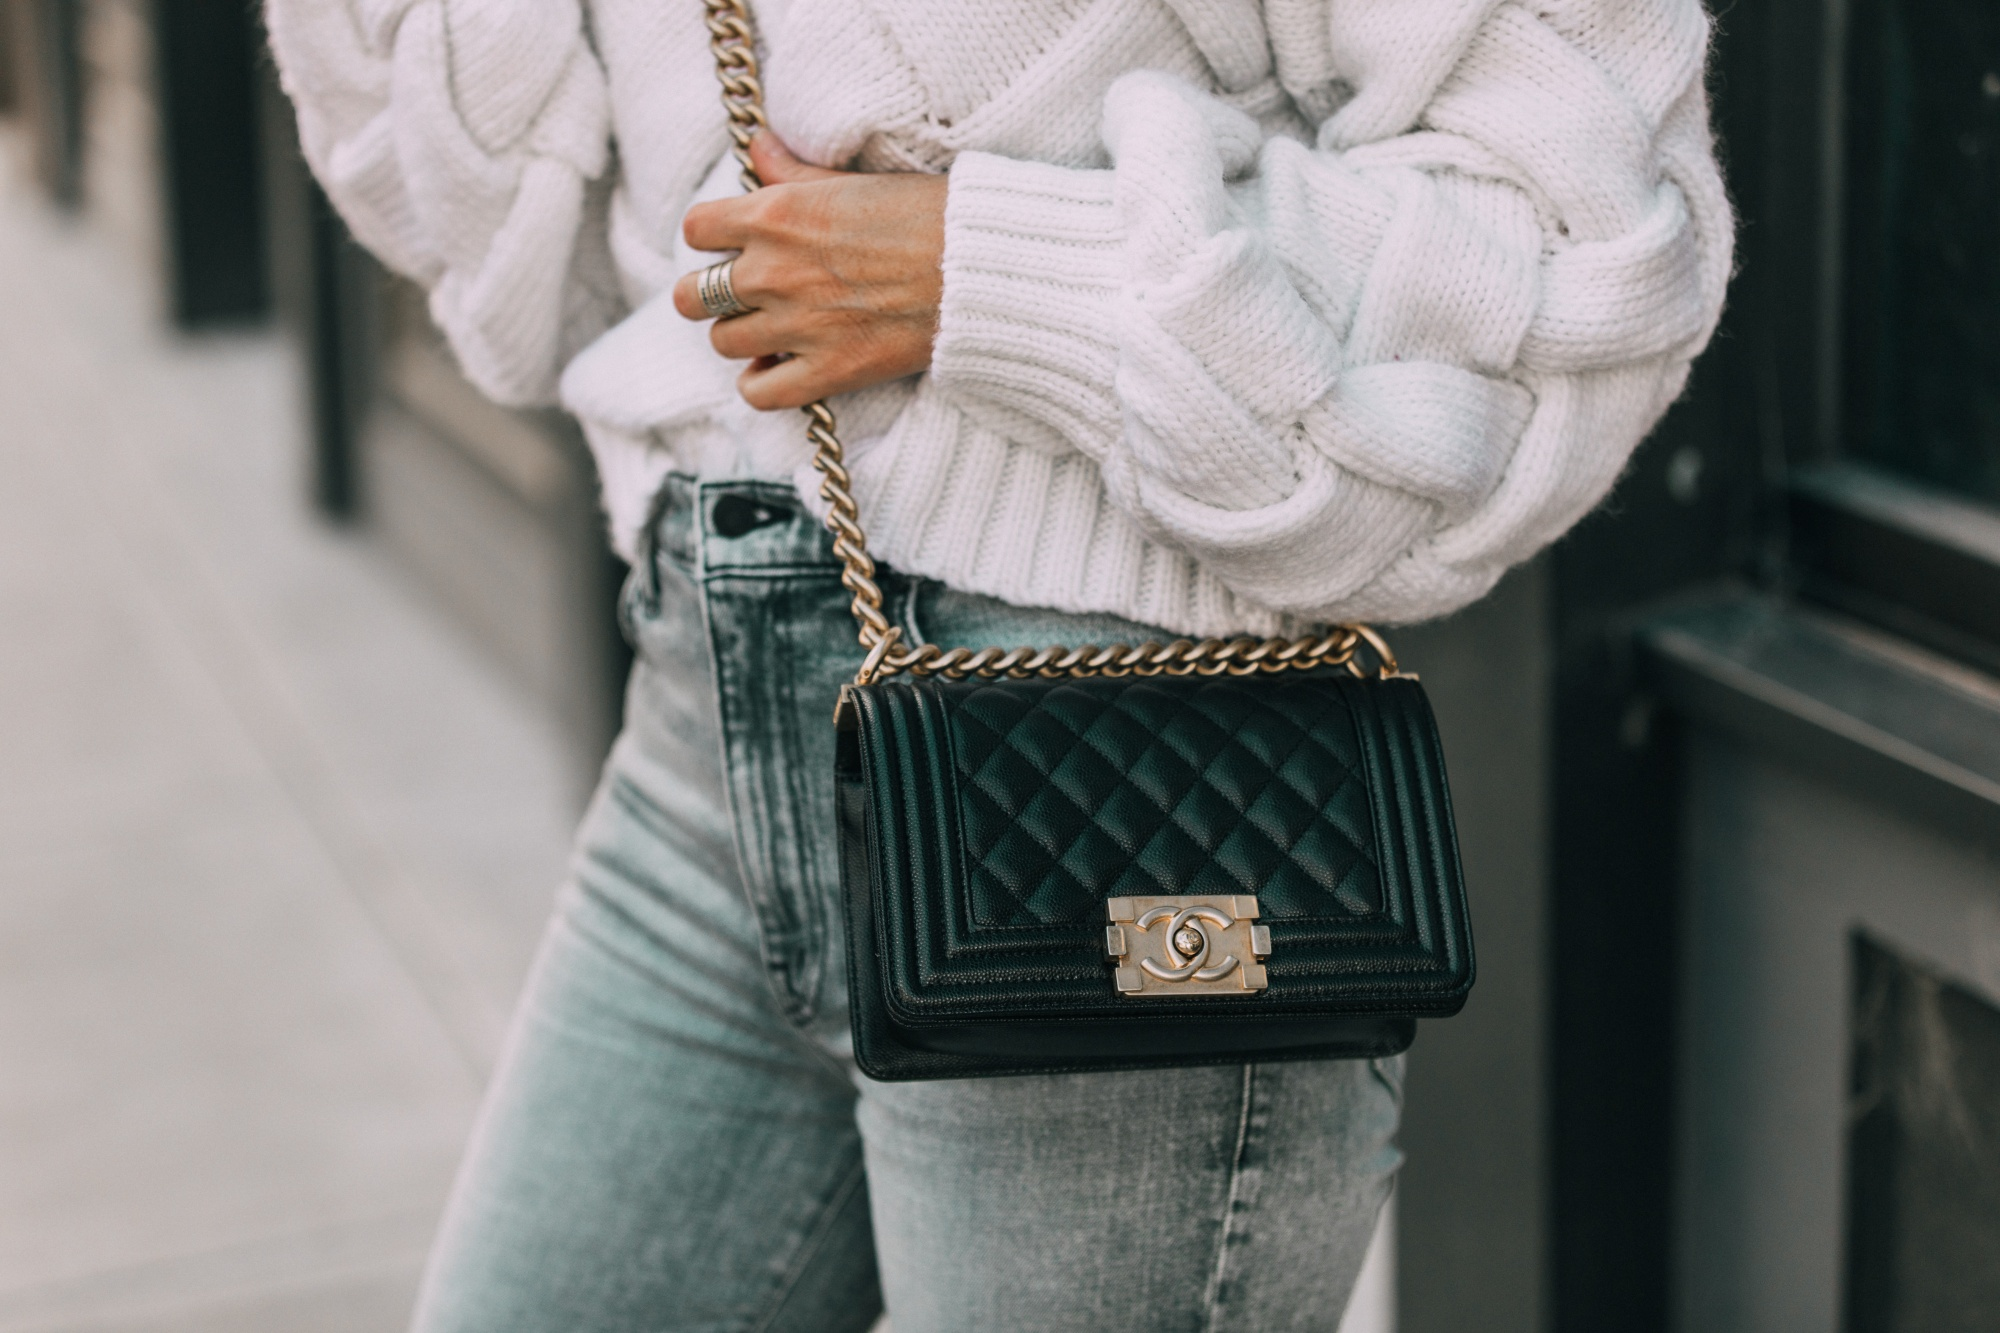 Designer Handbags For Fall, Fashion blogger Erin Busbee of BusbeeStyle.com carrying the Chanel boy bag wearing jeans and a sweater in Telluride, CO